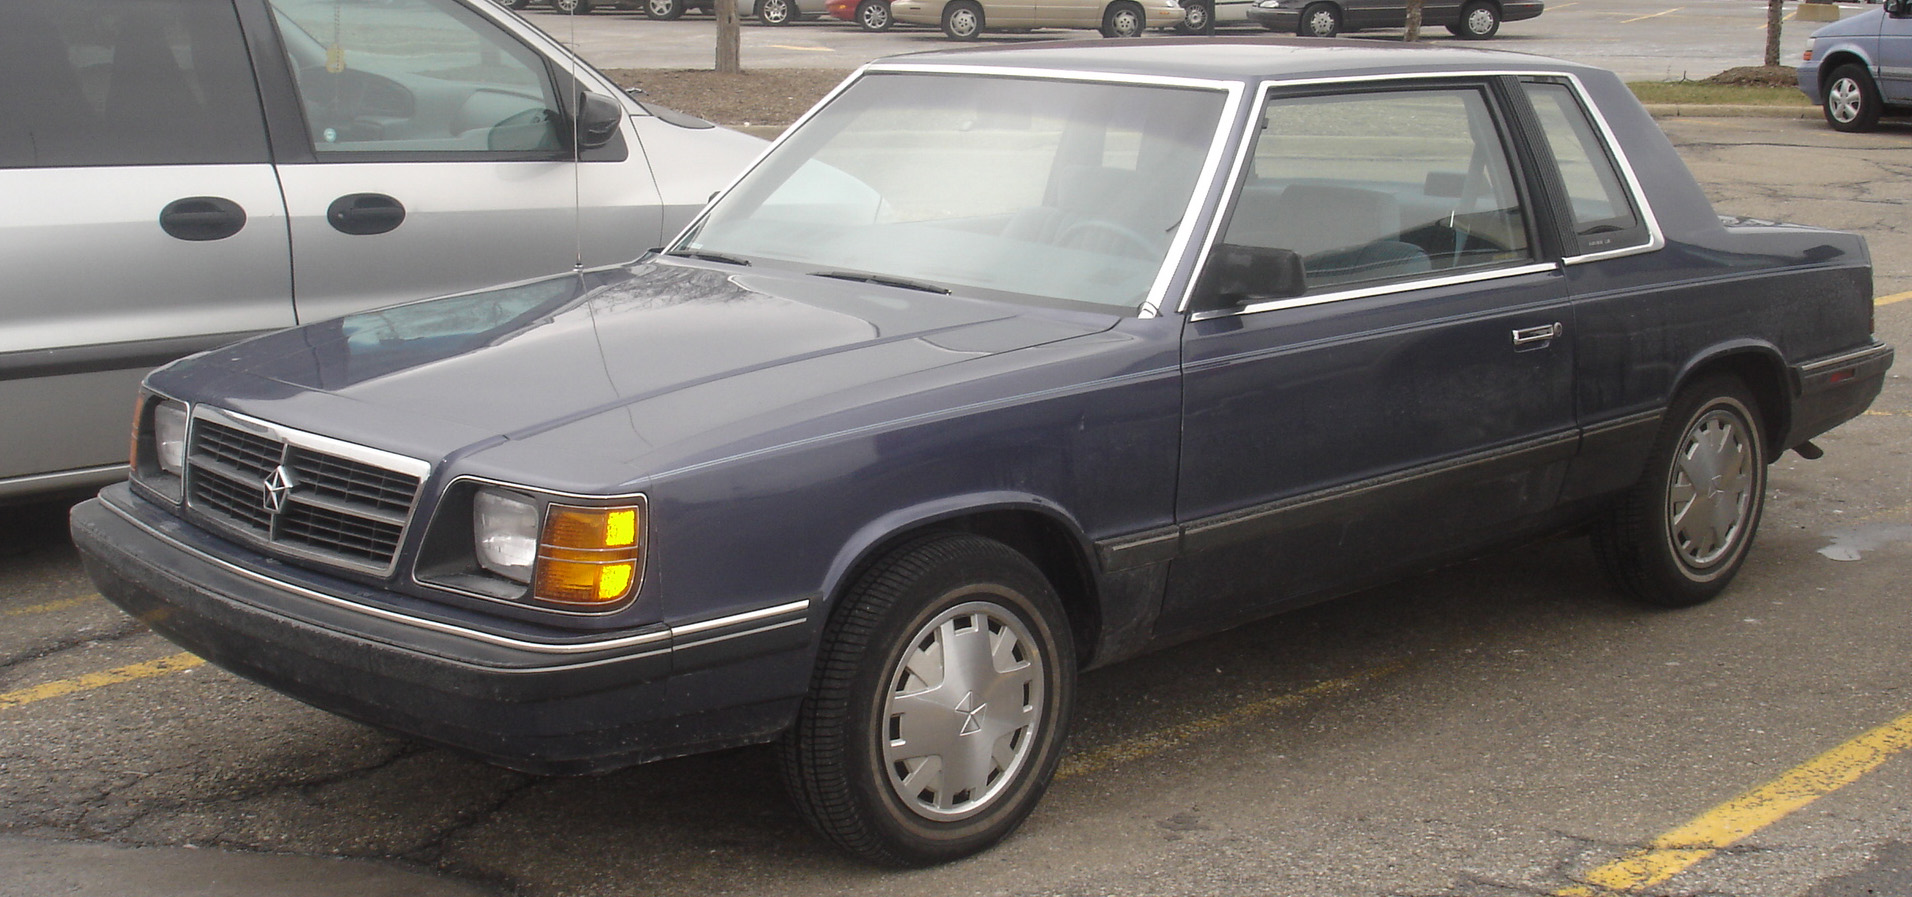 1989 Dodge Aries Coupe